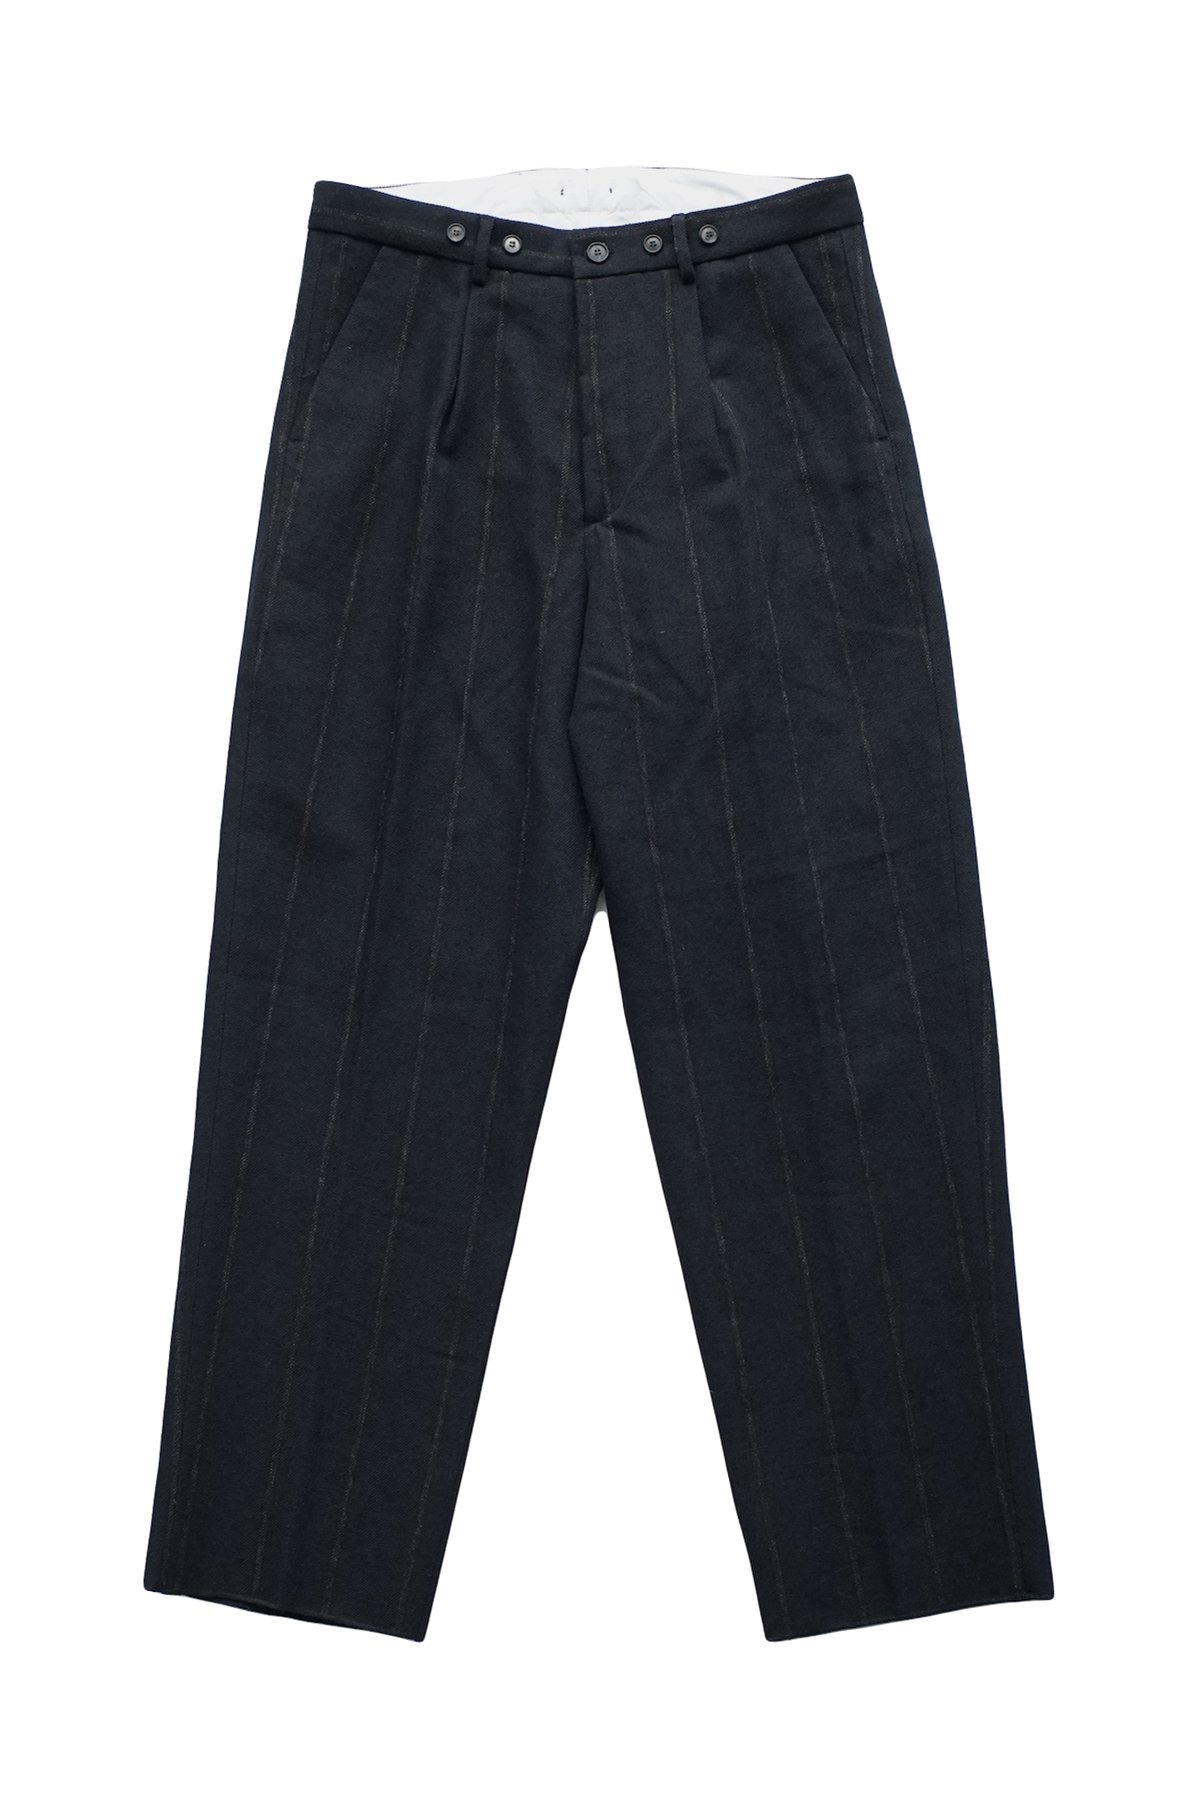 Bergfabel - FARMER PANTS - BLACK NAVY STRIPE - PRICE 96,800 tax-in